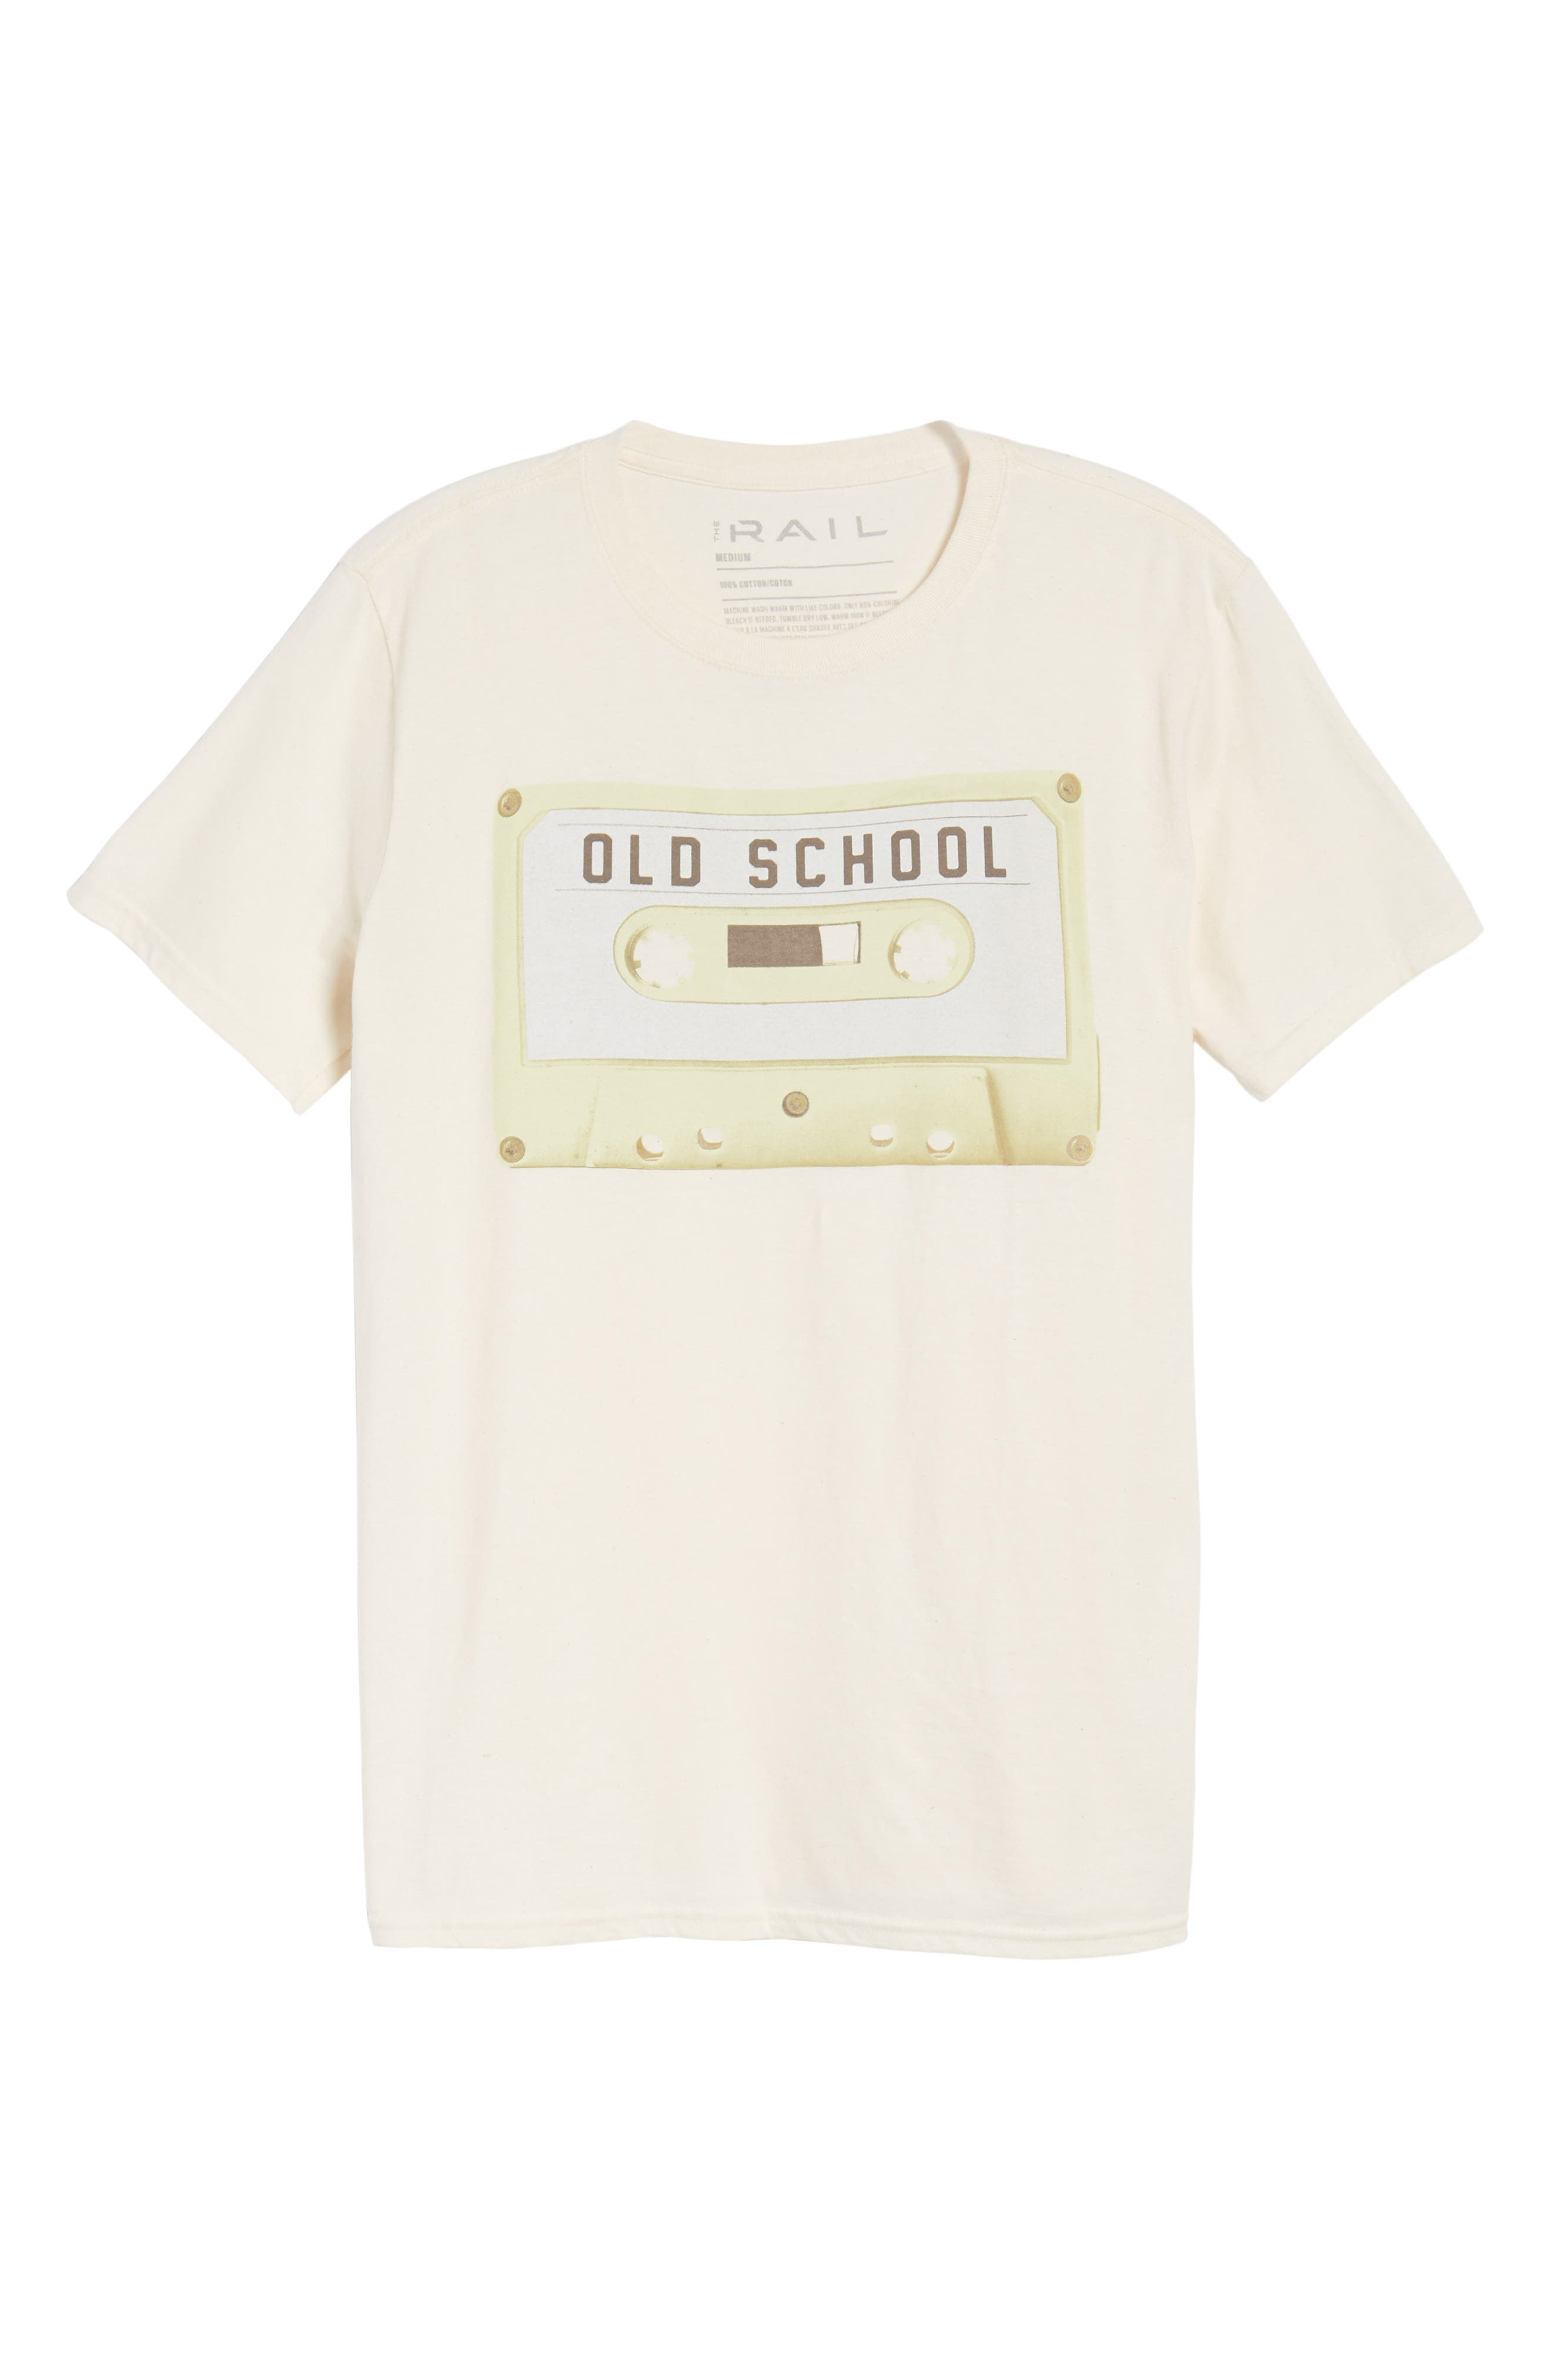 Old School T-Shirt,                             Alternate thumbnail 6, color,                             Ivory Old School